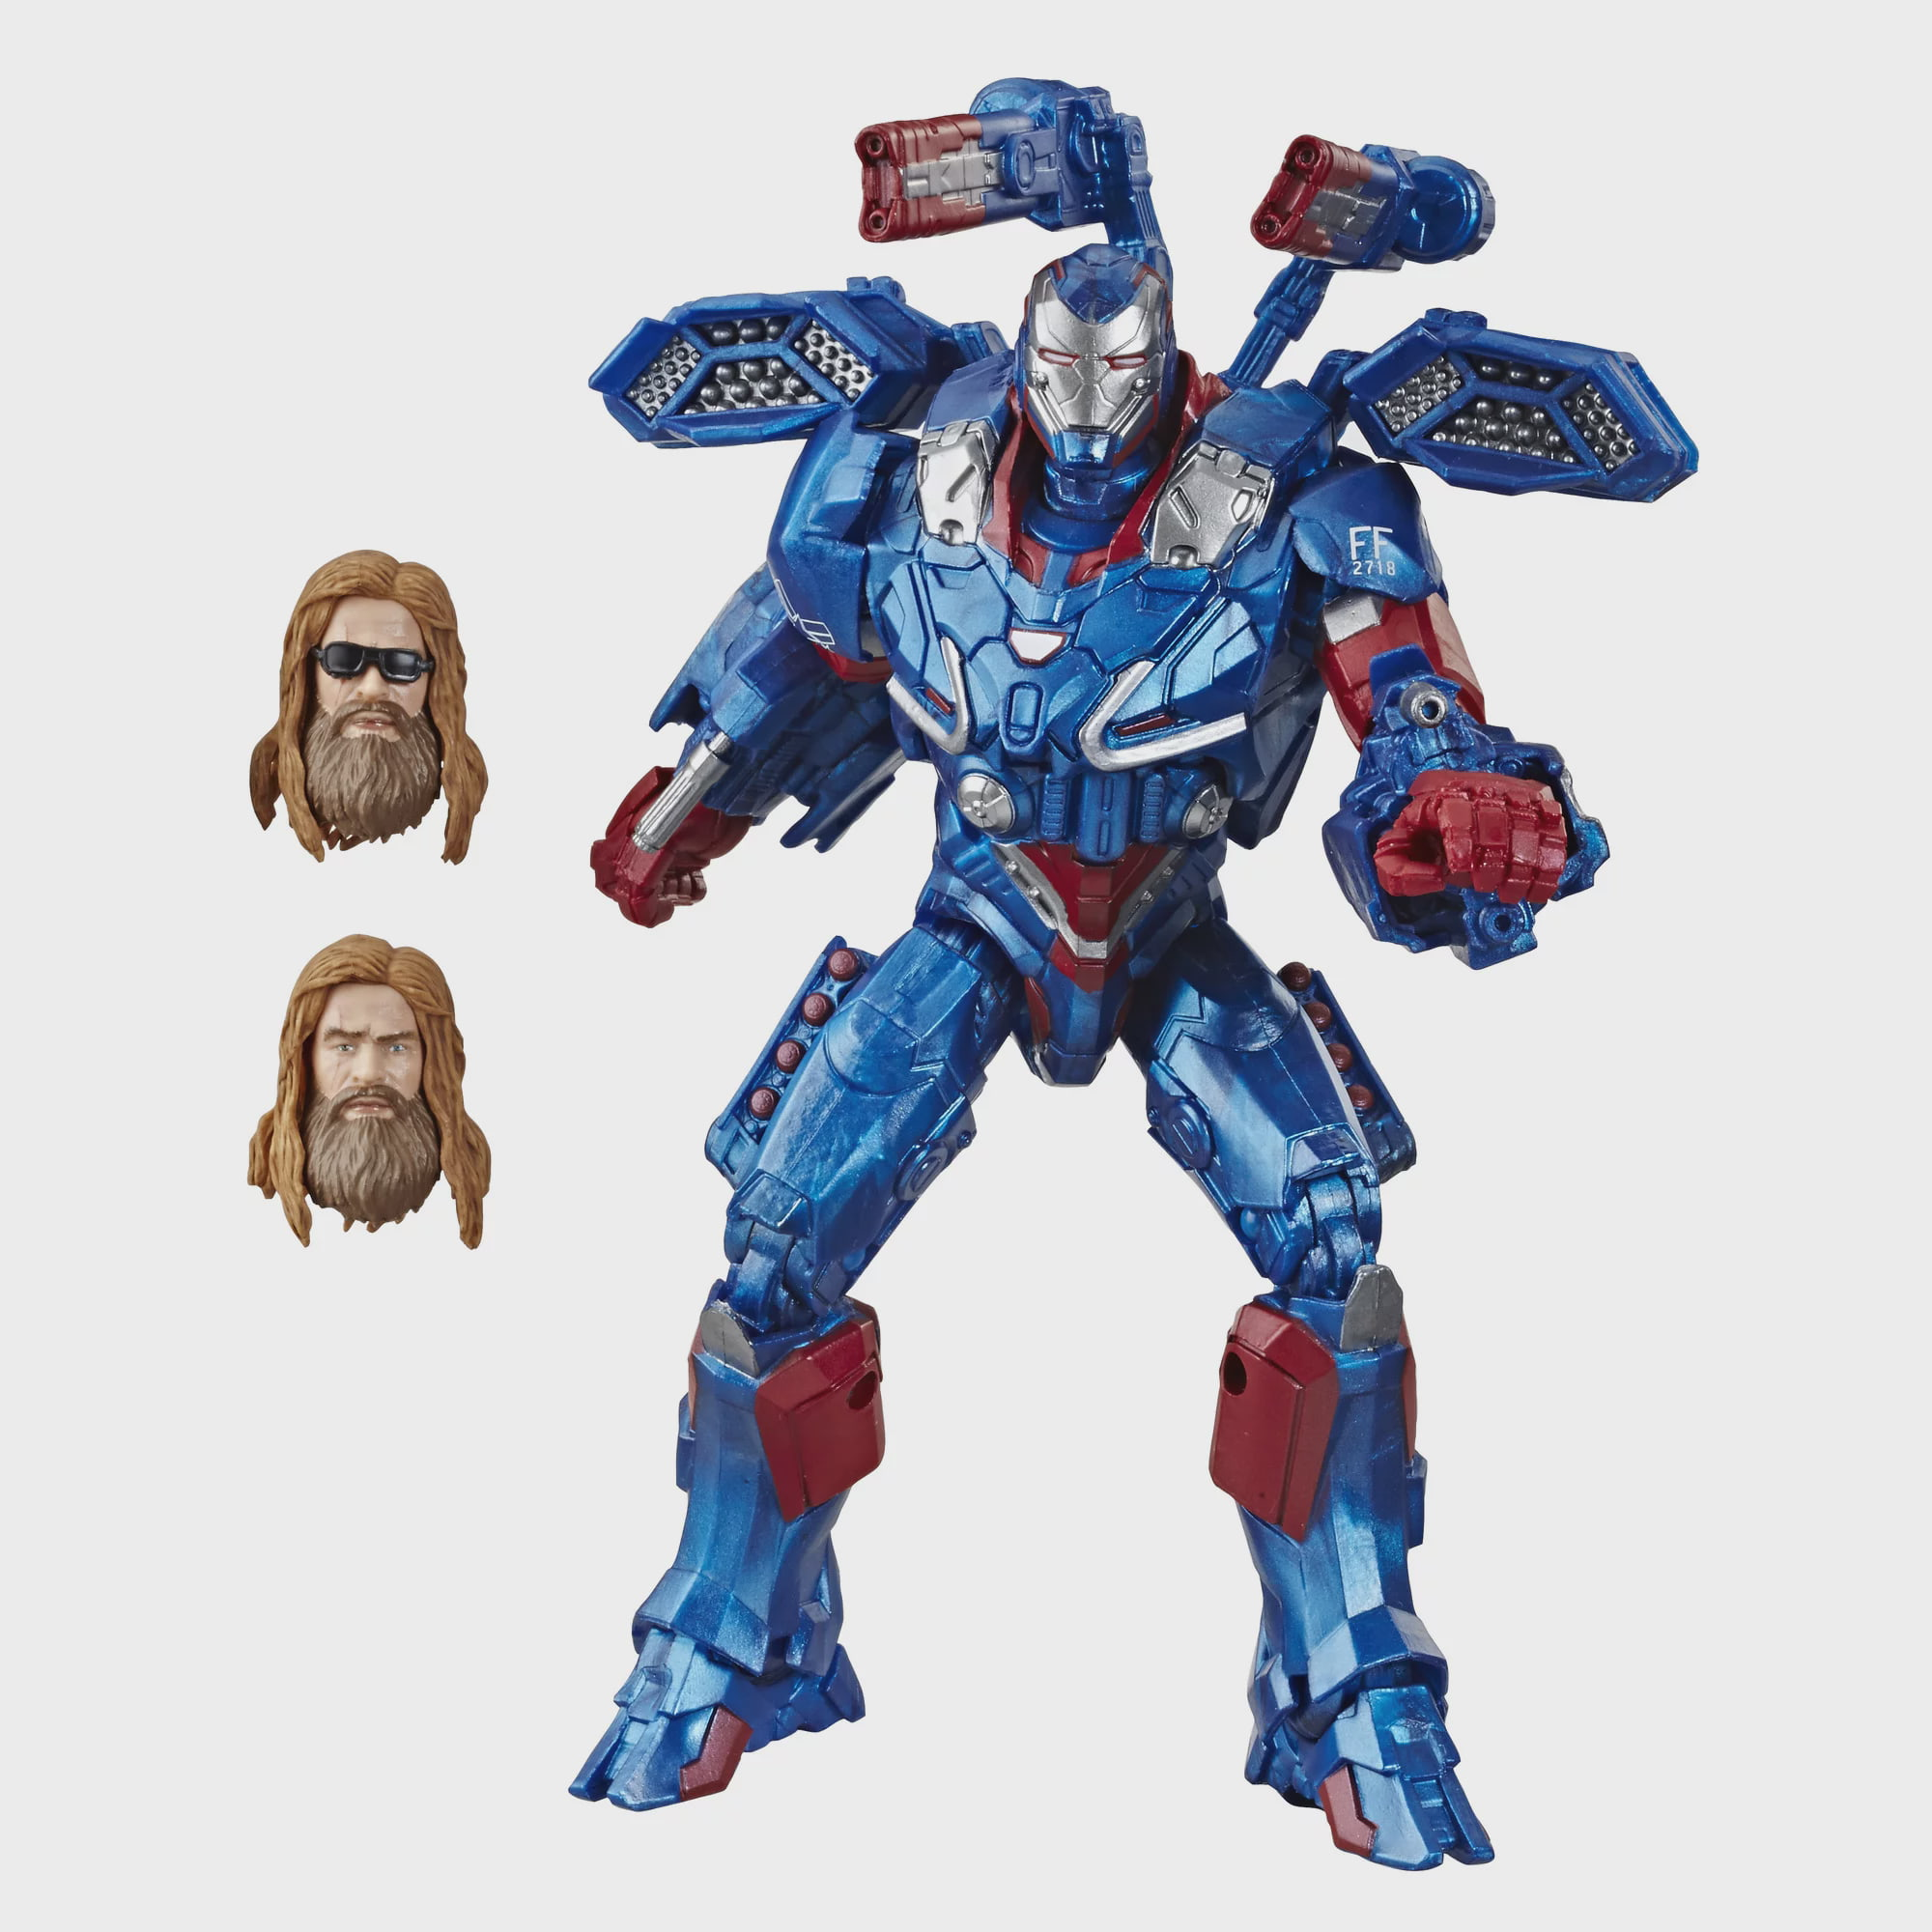 Marvel Legends Series Avengers: Endgame 6-in Figure Iron Patriot